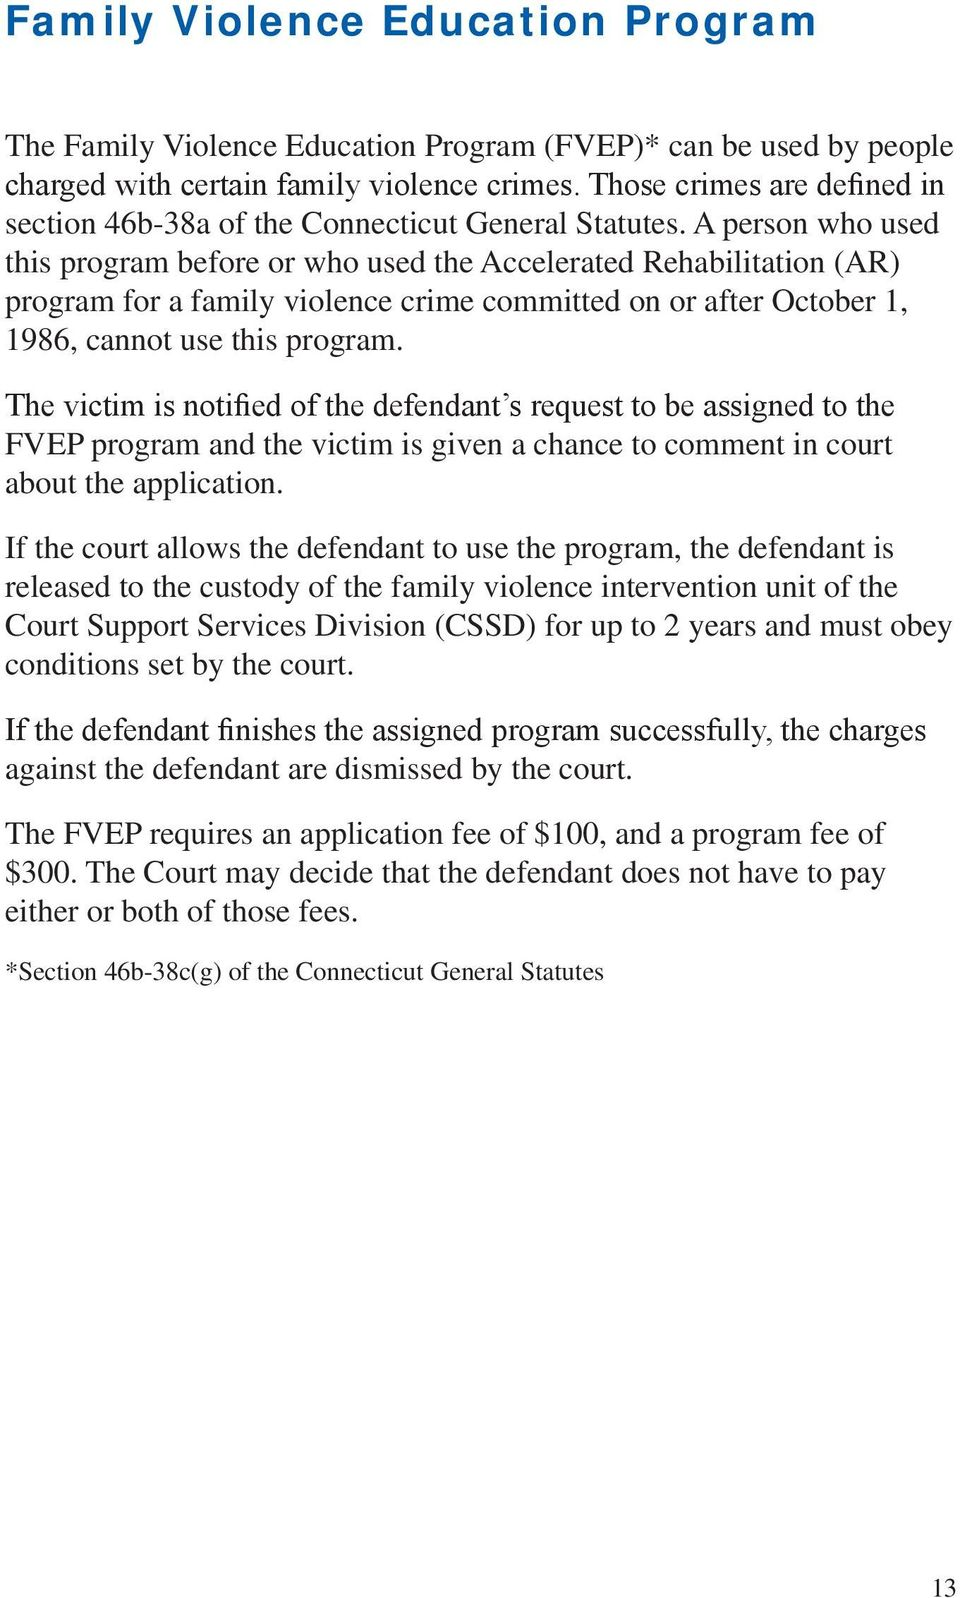 A person who used this program before or who used the Accelerated Rehabilitation (AR) program for a family violence crime committed on or after October 1, 1986, cannot use this program.